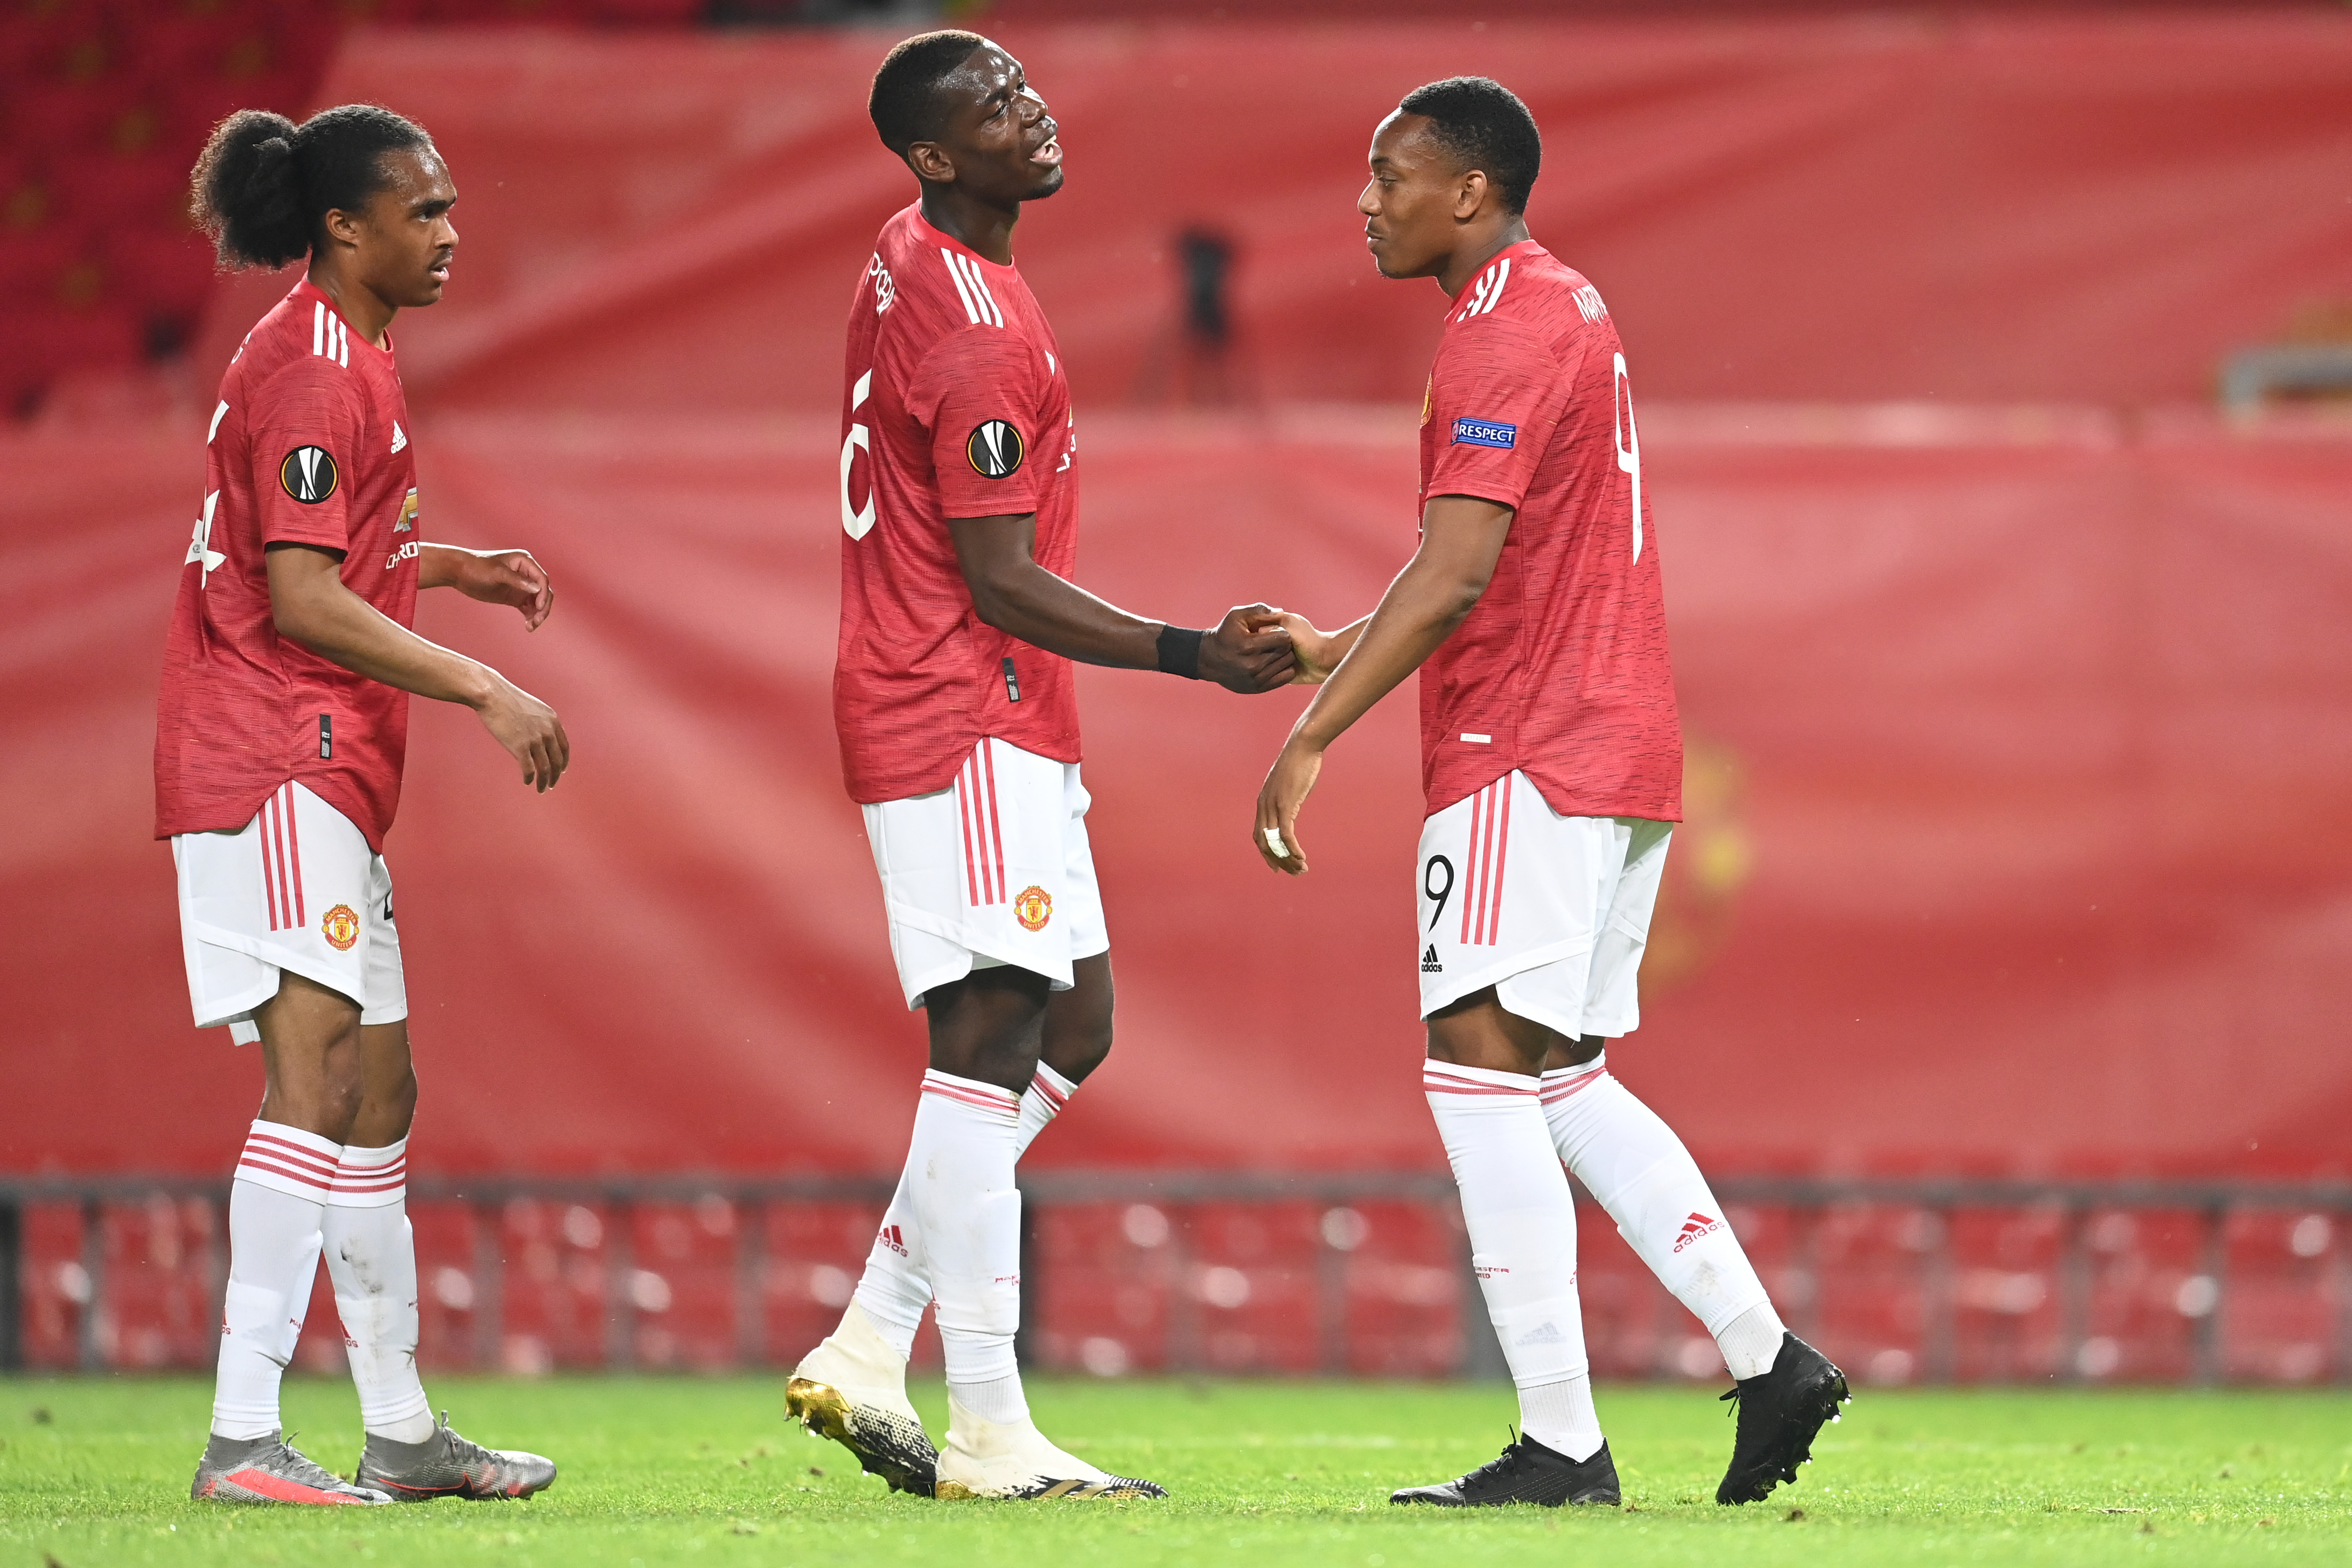 3 ways how Manchester United can tactically outwit Sevilla (Man United players celebrating in the picture)